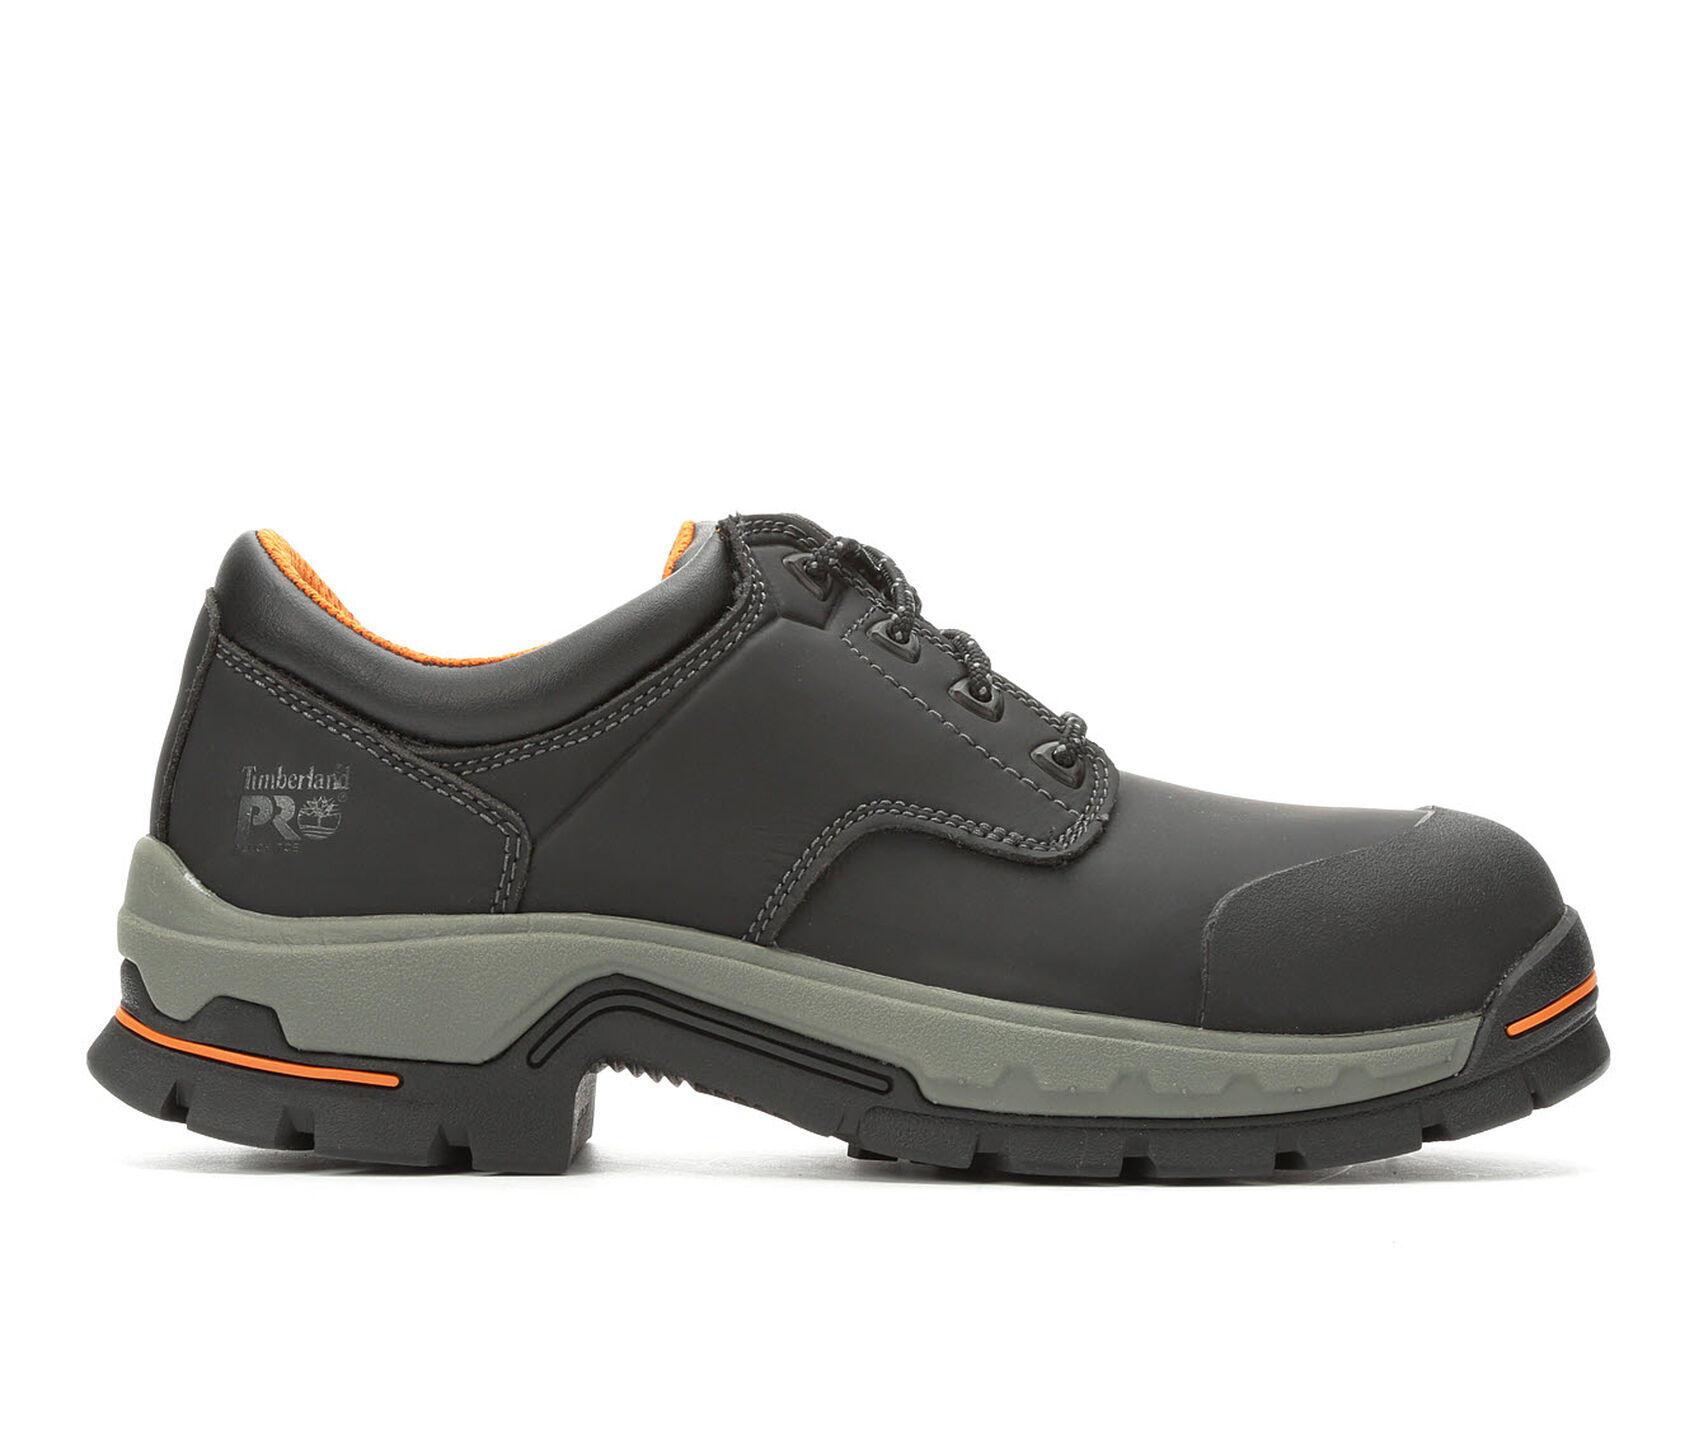 0d4b3d26569 Men's Timberland Pro Stockdale Alloy Toe 1100A Work Shoes